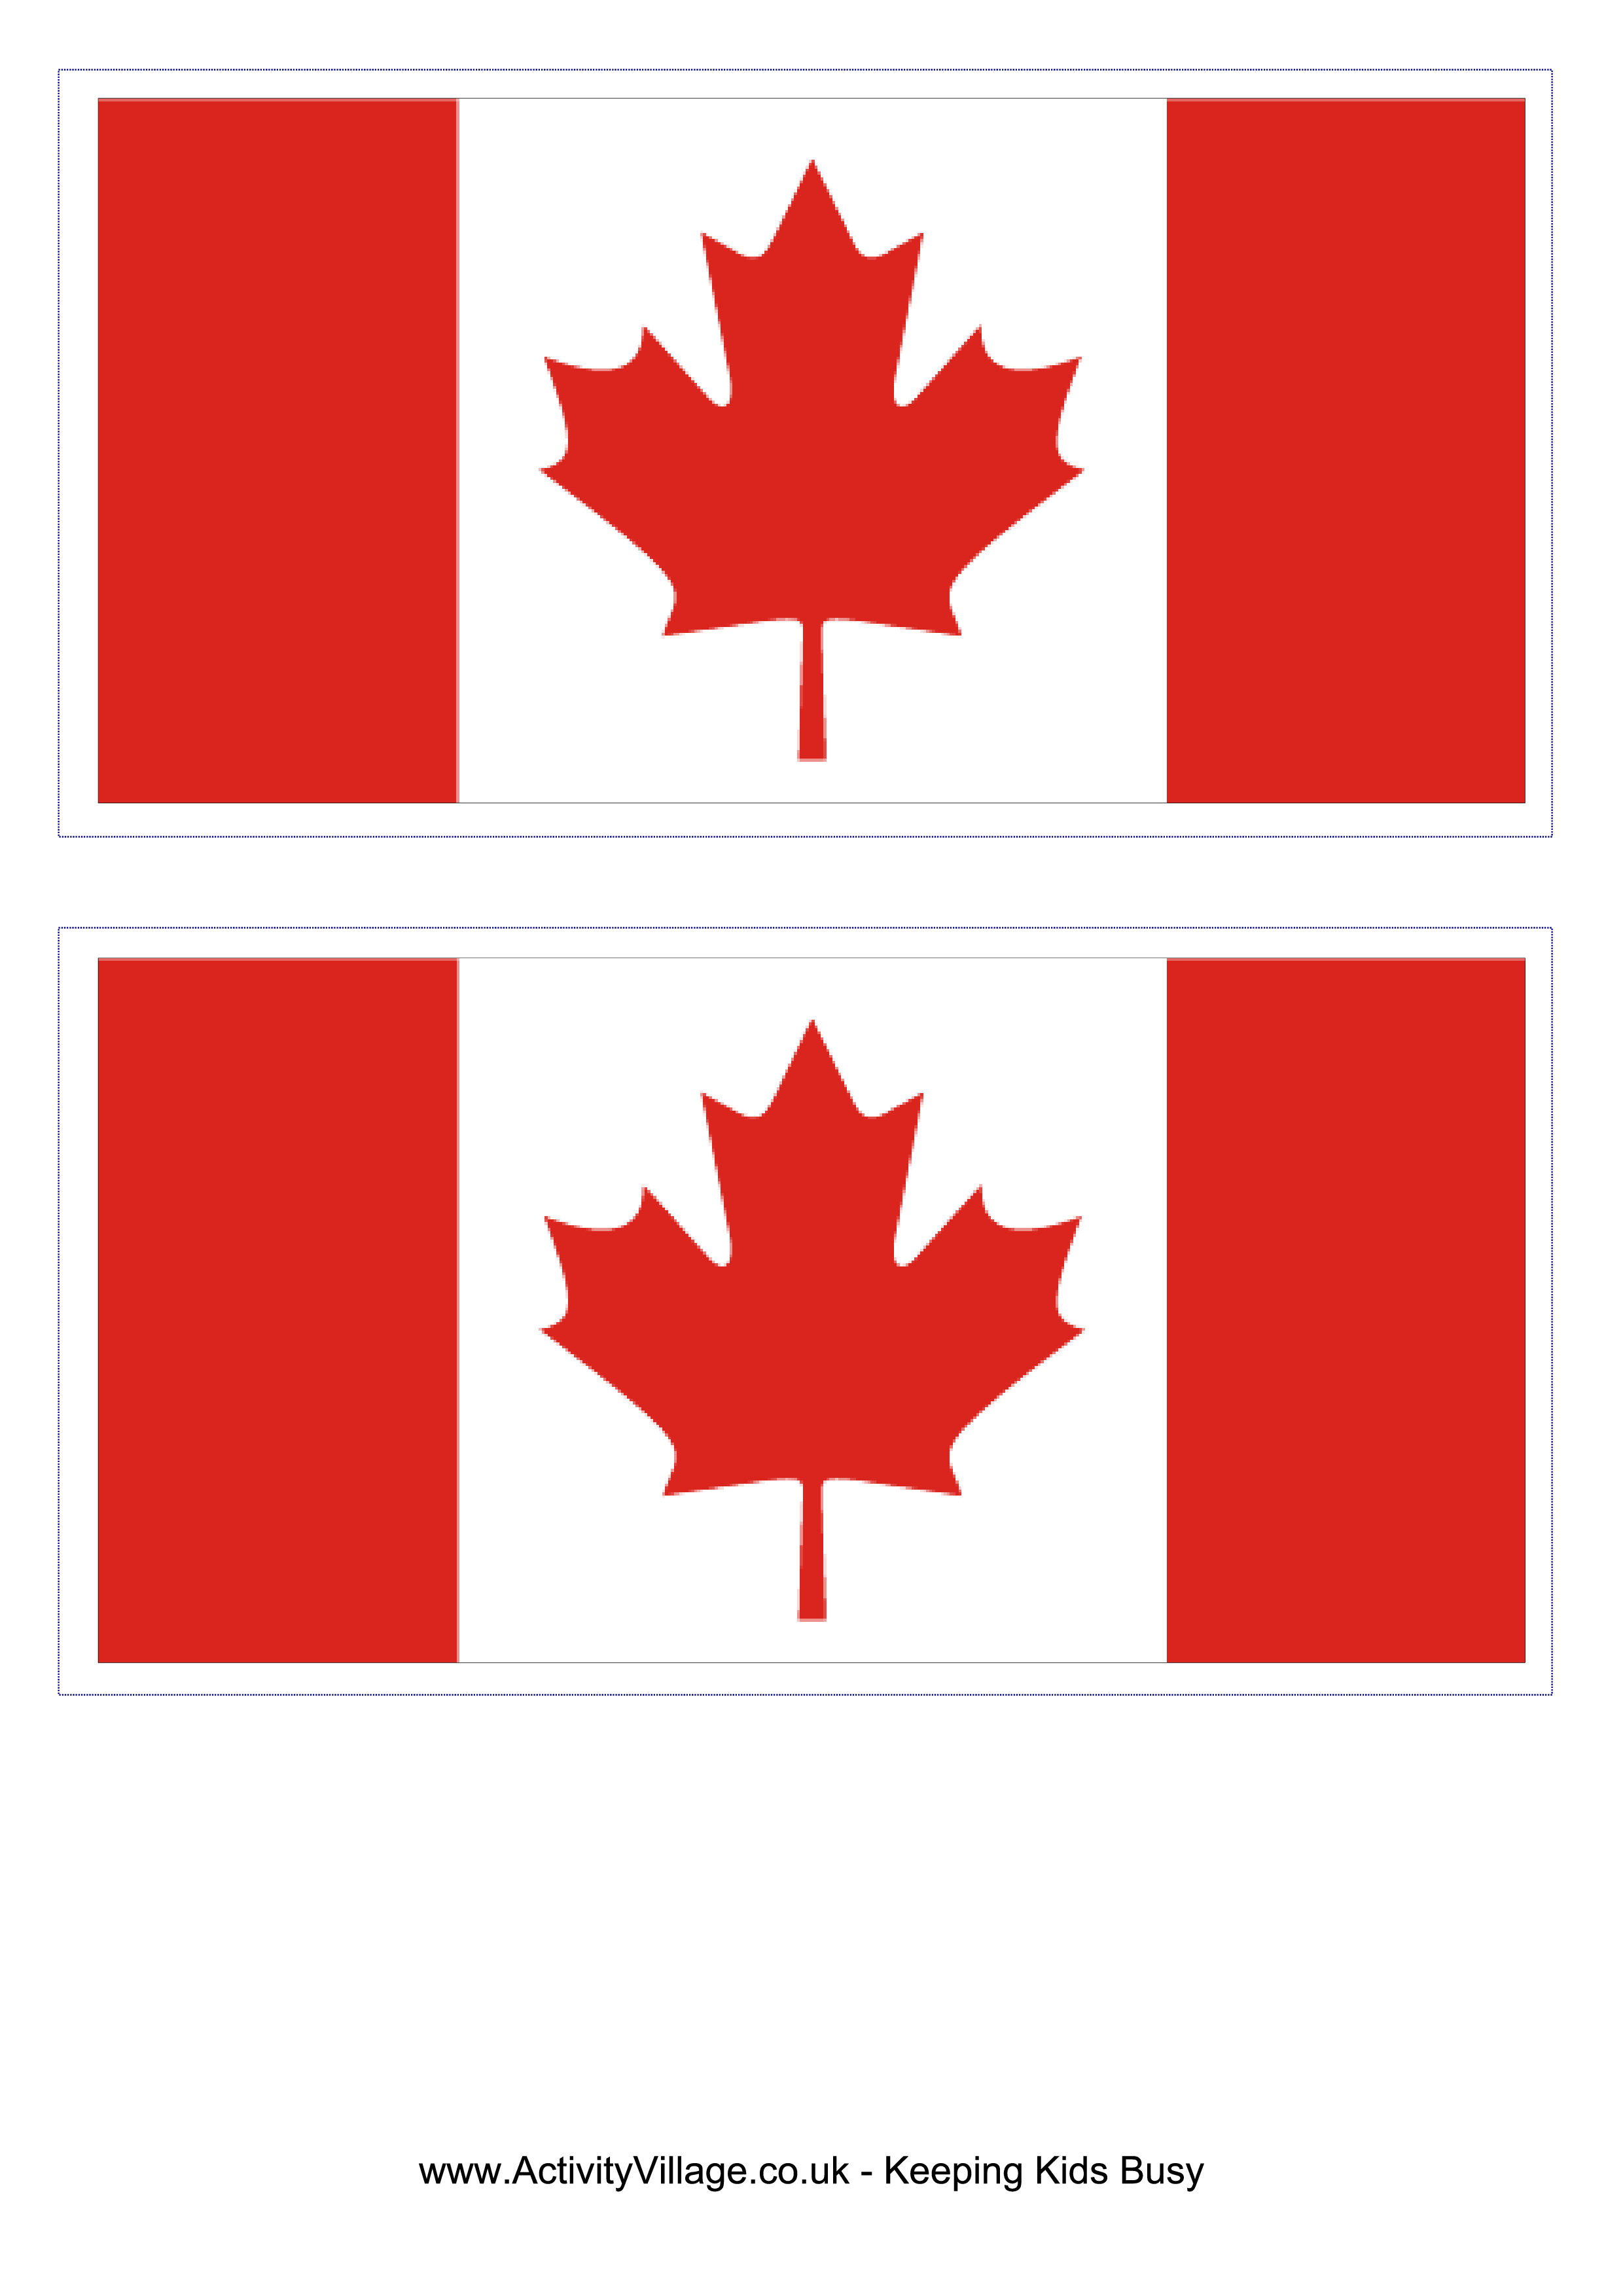 graphic about Printable Canadian Flag called Canadian Flag - Absolutely free Printable Canadian Flag Templates